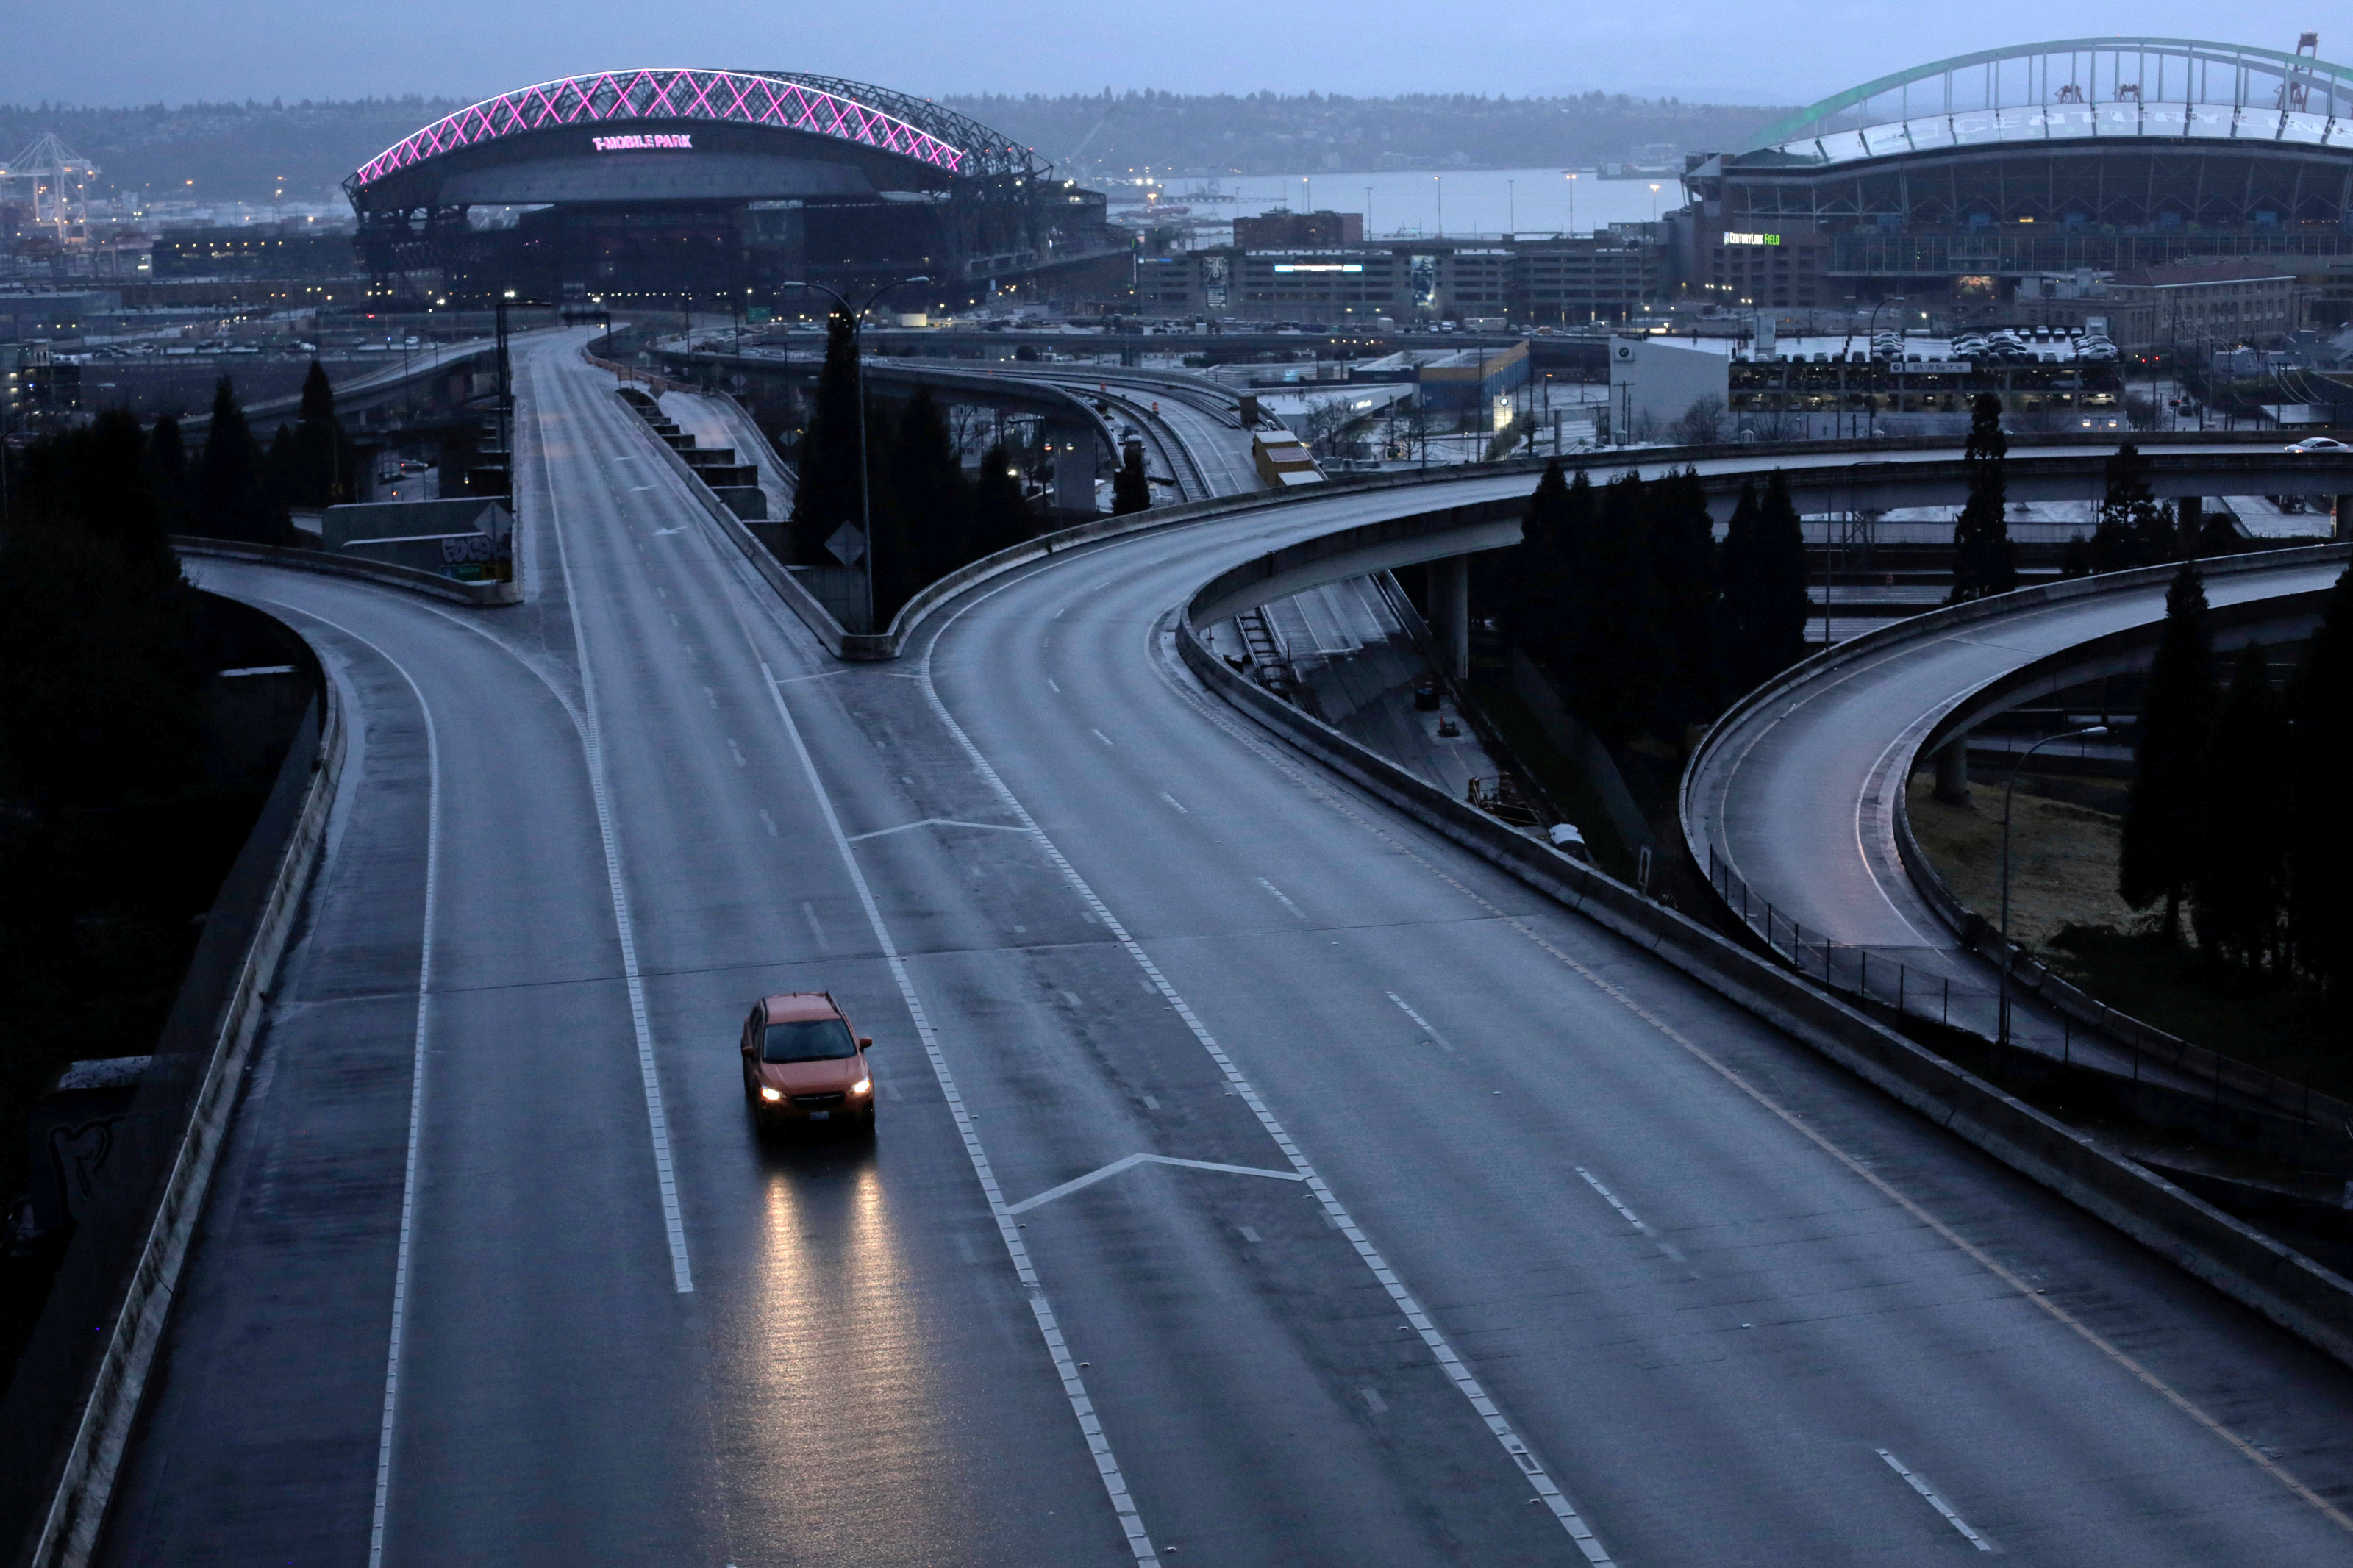 A car moves along an empty highway during the coronavirus disease (COVID-19) outbreak in Seattle, Washington, U.S. March 30, 2020.  REUTERS/David Ryder/File Photo